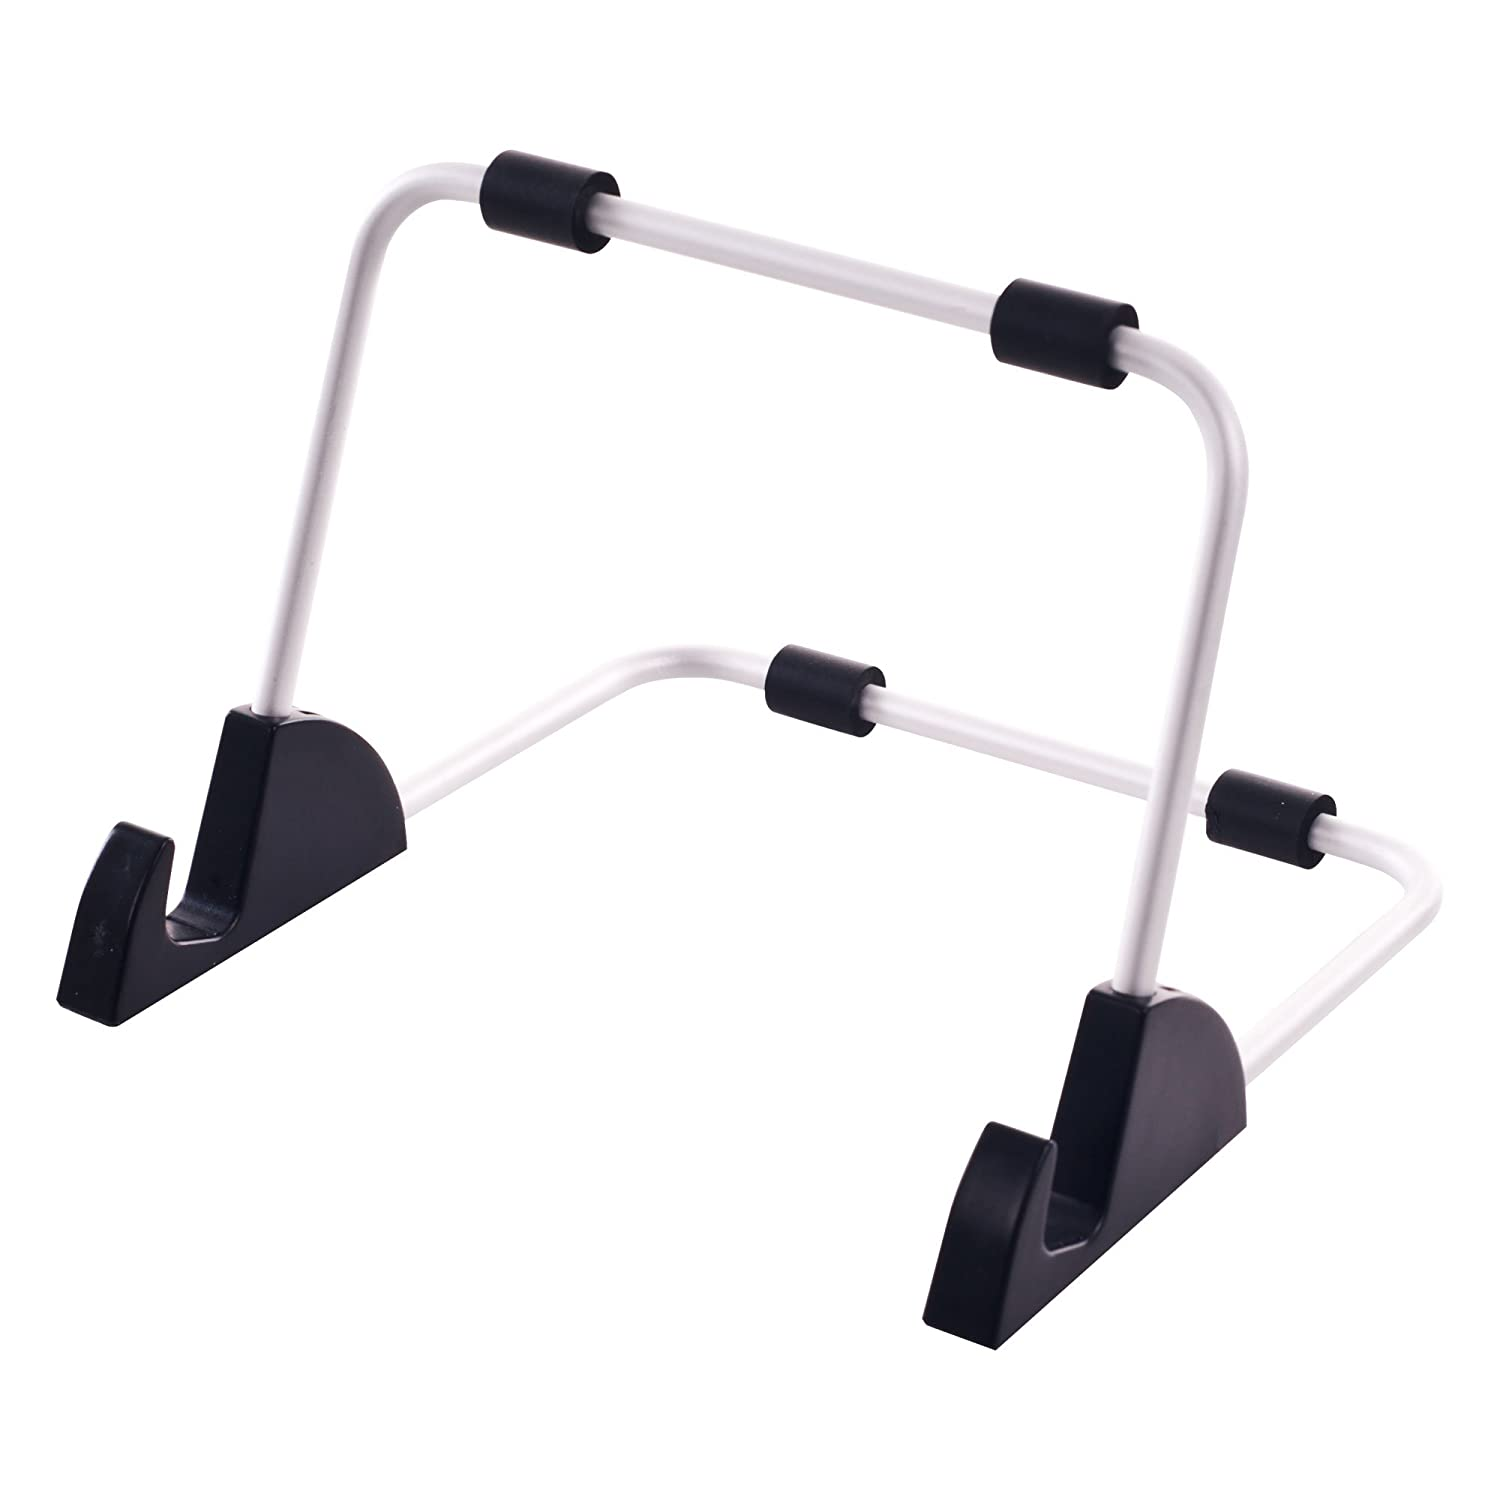 Amazon.com: Northwest Adjustable Tablet Easel Stand for iPad, Galaxy, and  more: Computers & Accessories